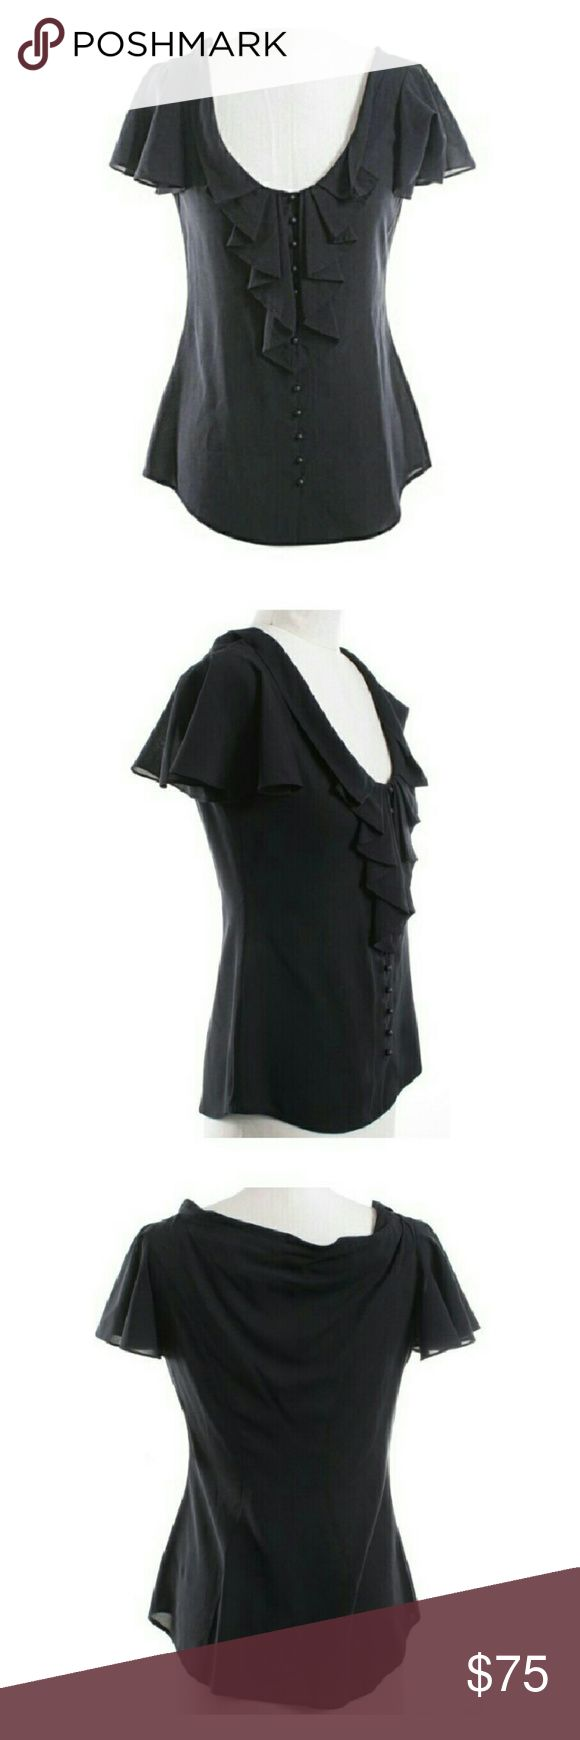 Zac Posen  Black Silk Ruffle Front Scoop Neck Top Zac Posen Black Silk Ruffle Front Scoop Neck Flutter sleeve top. Light and airy button up silk blend blouse. Ruffle front with a scoop neckline and flutter sleeves.Tiny button-and-loop front closure with spherical, black buttons. Seamed for a fitted silhouette. Pleated detailing at neckline. Interior snap tabs at shoulders to keep bra straps in place. Hits approximately at the hips. Tuck it into a pencil skirt and pair with some heels for a…